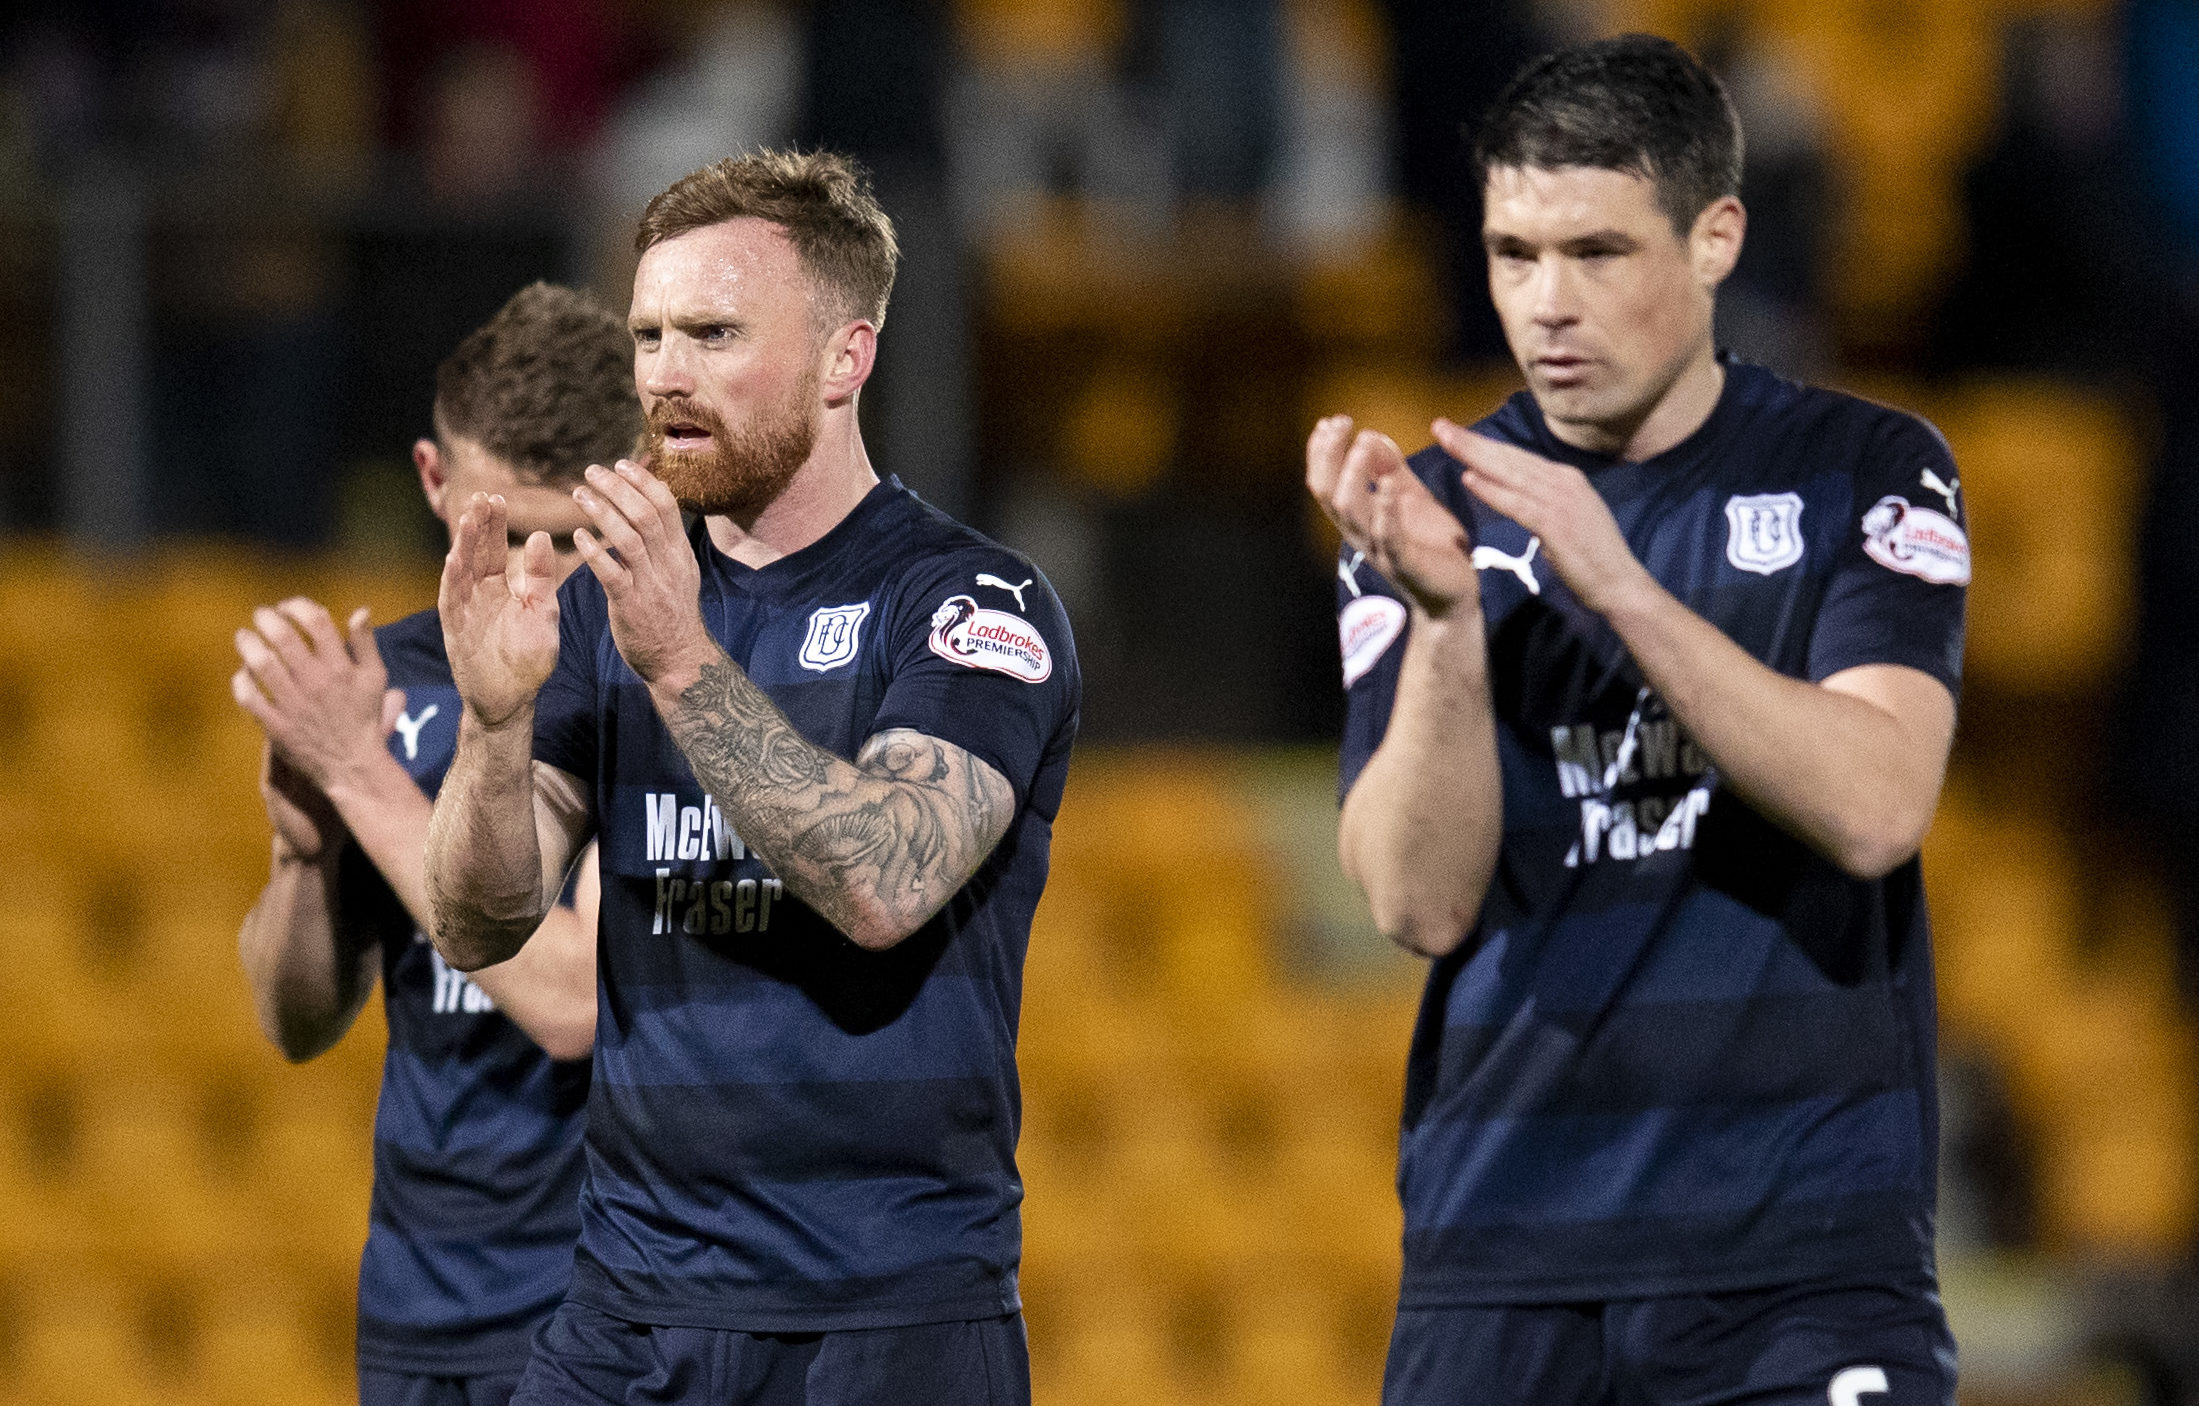 The Dundee players applaud their fans at full-time.